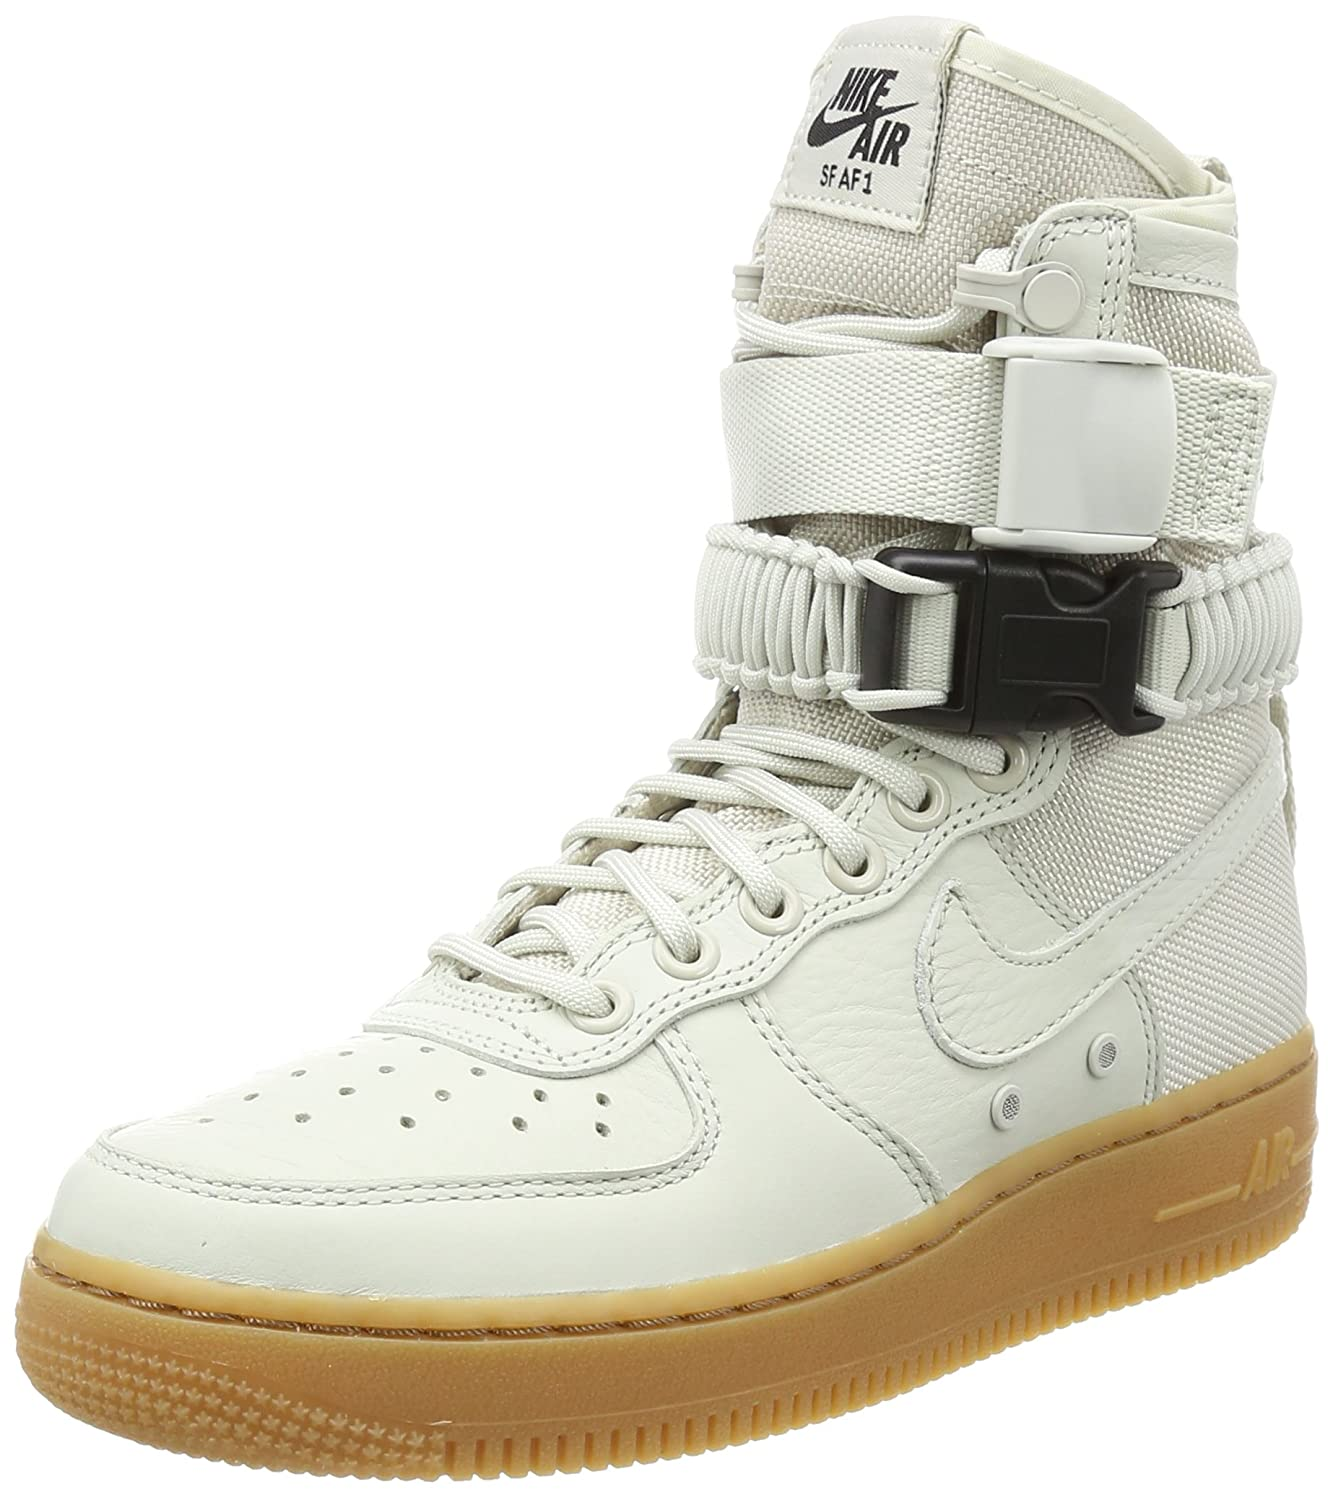 NIKE Women's SF AF1 Casual Shoe B0757RNLHM 7.5 B(M) US|Light/Bone/Light/Bone